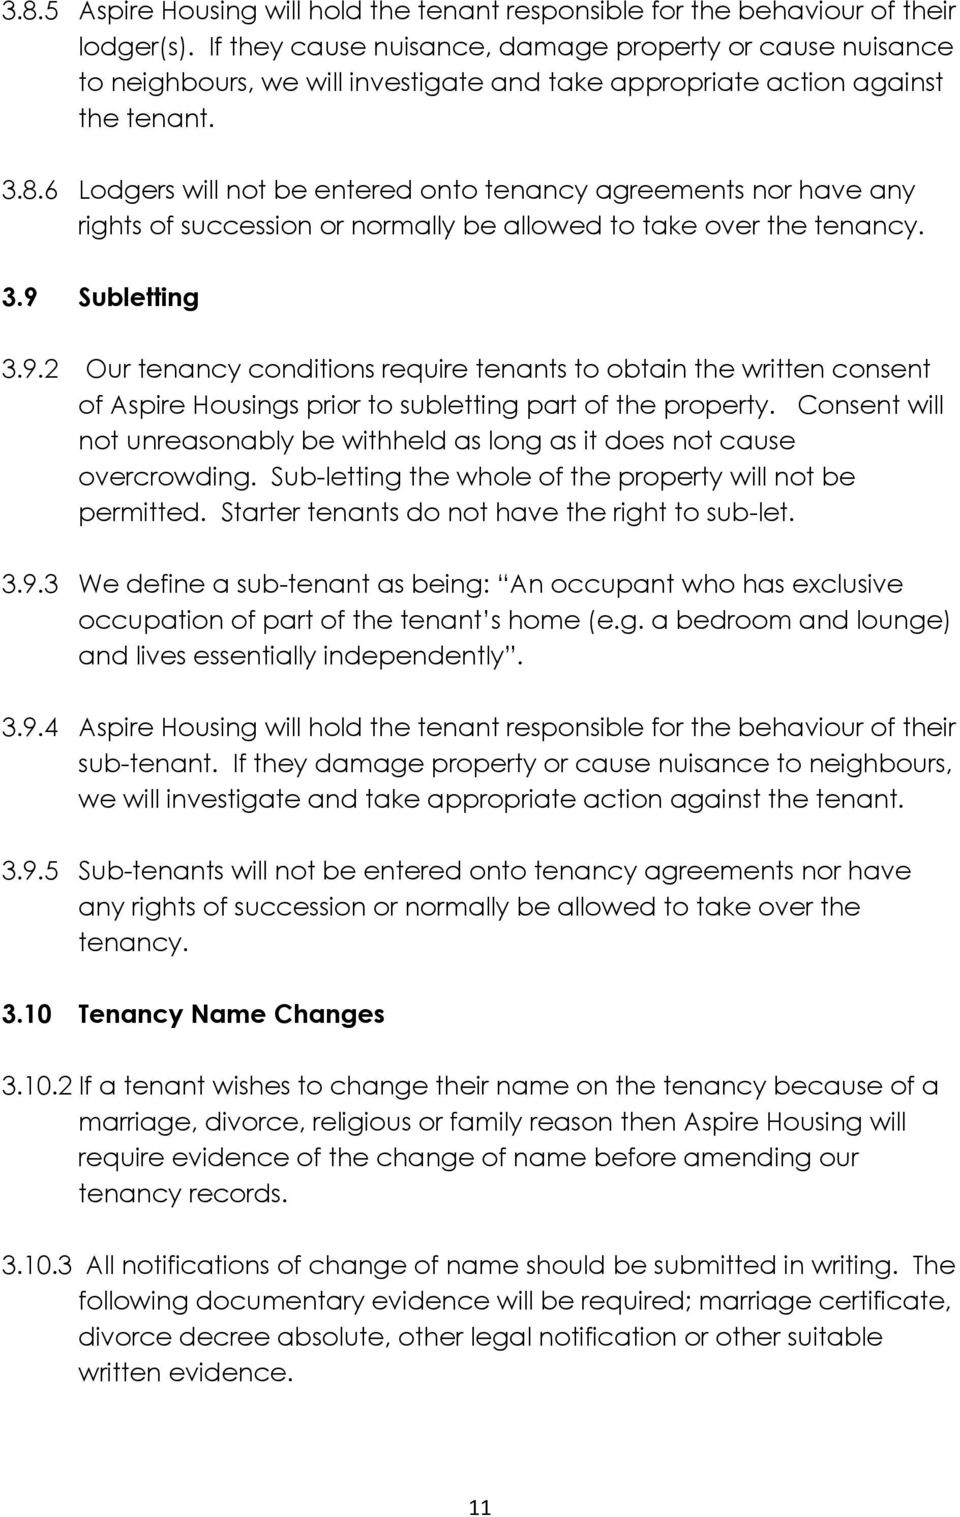 6 Lodgers will not be entered onto tenancy agreements nor have any rights of succession or normally be allowed to take over the tenancy. 3.9